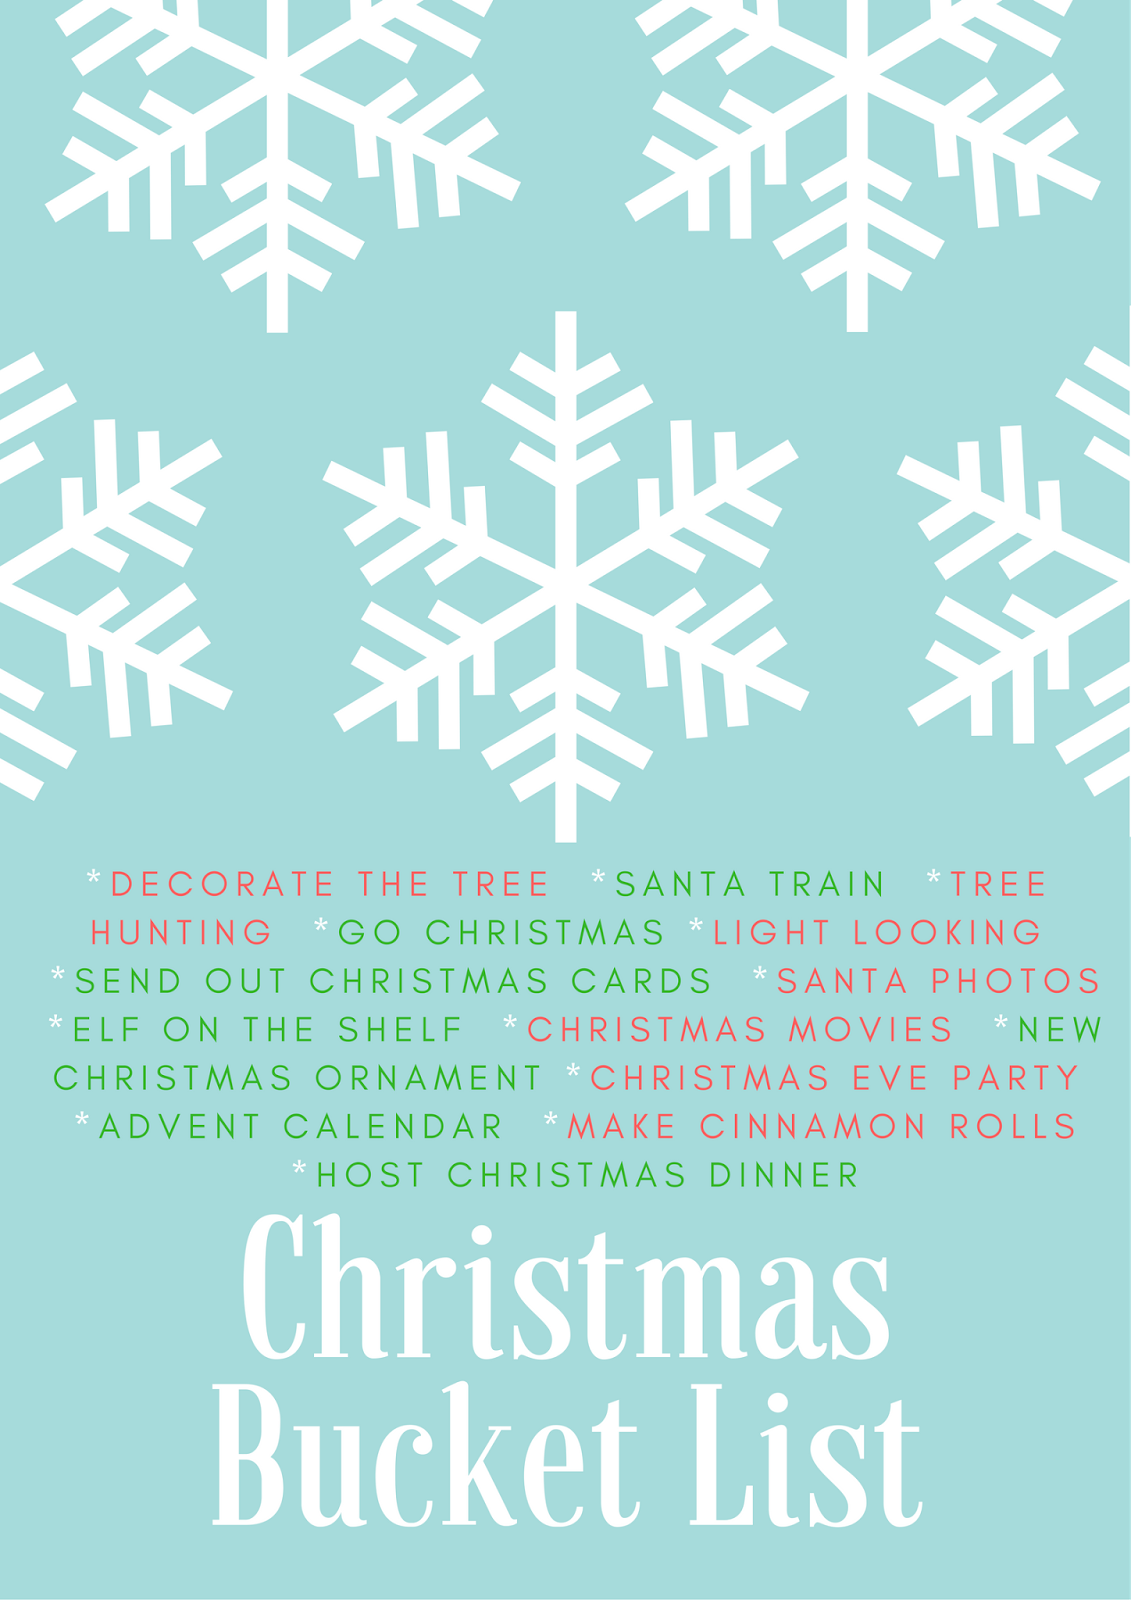 Christmas Bucket List 2016